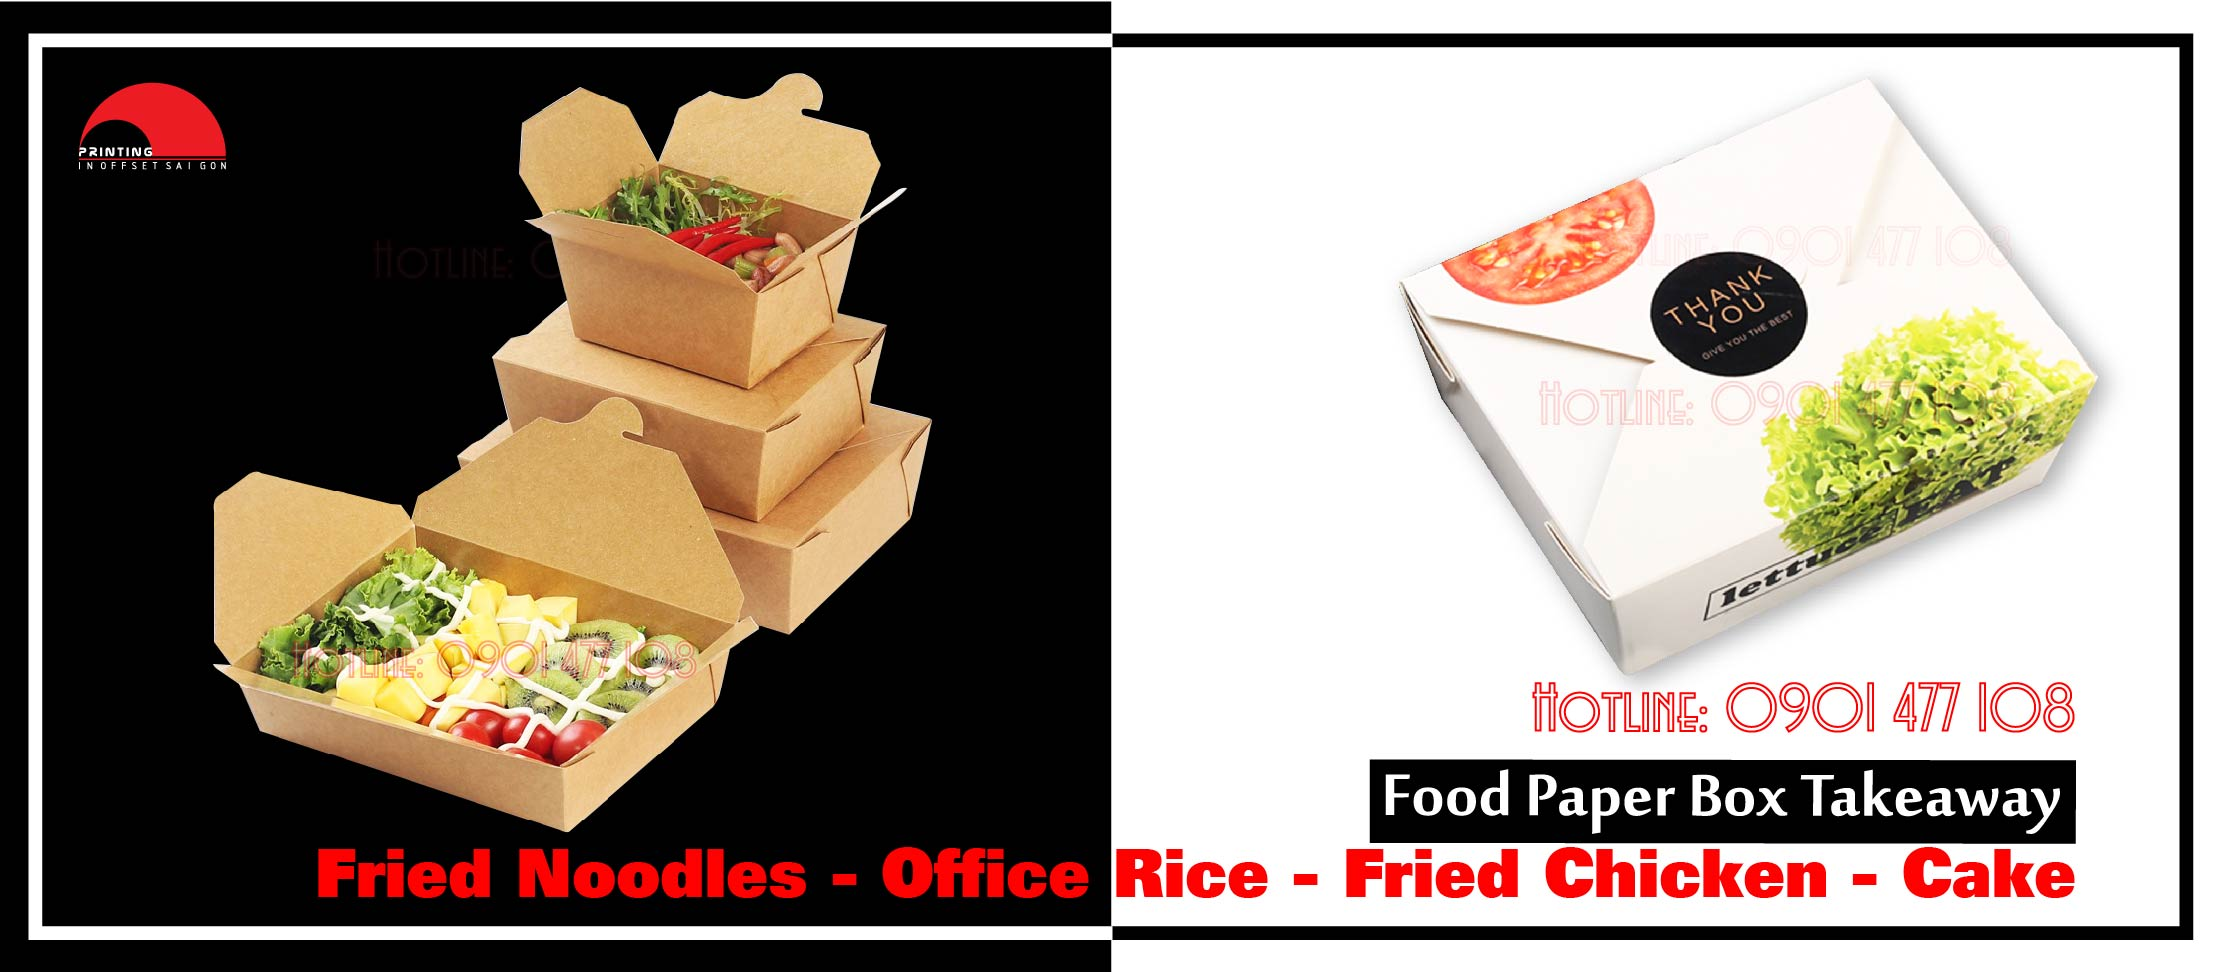 Food Paper Box Takeaway